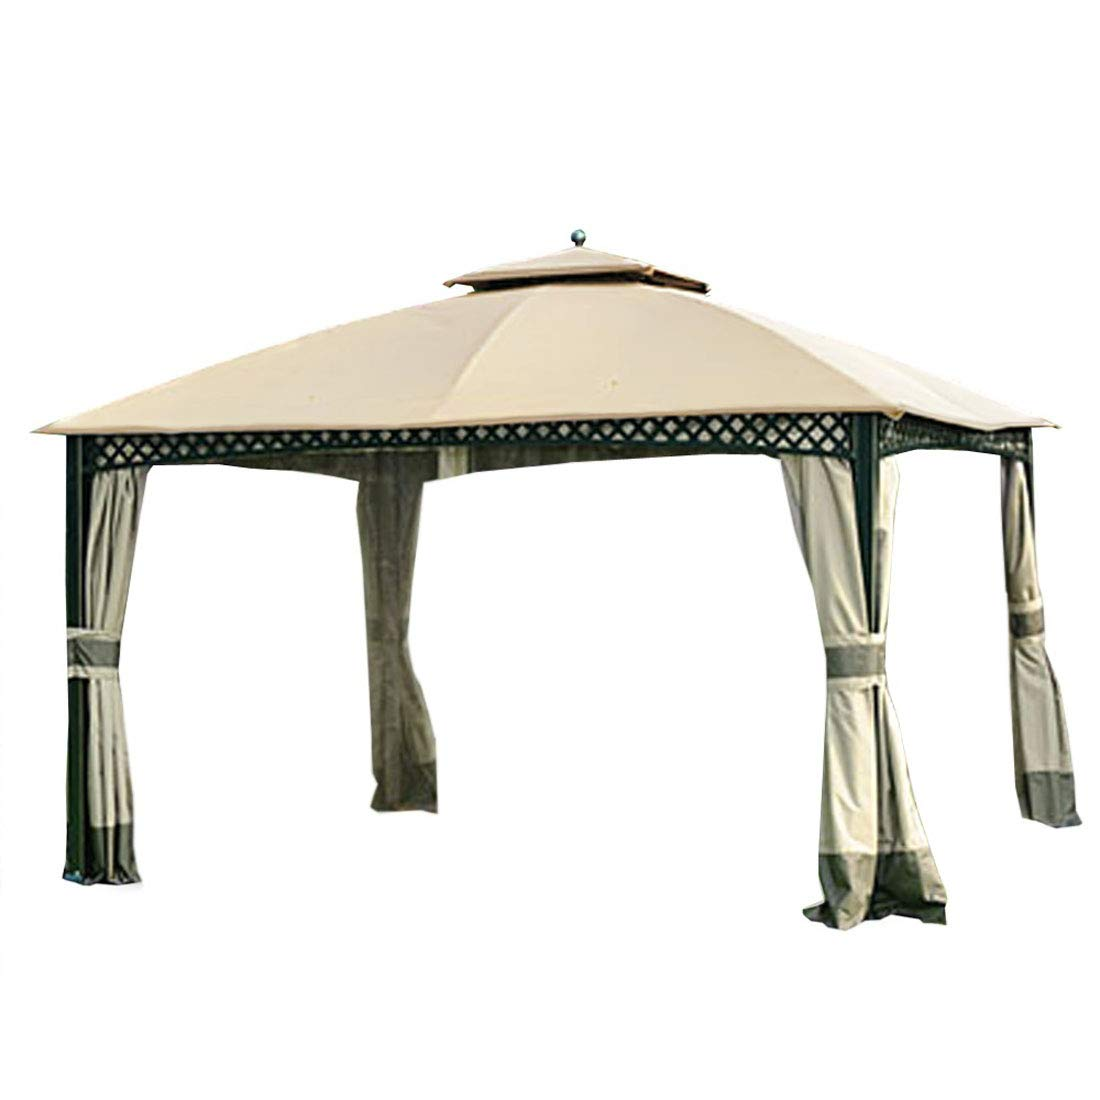 Garden Winds LCM1202B Windsor Dome Gazebo Replacement Canopy, Beige by Garden Winds